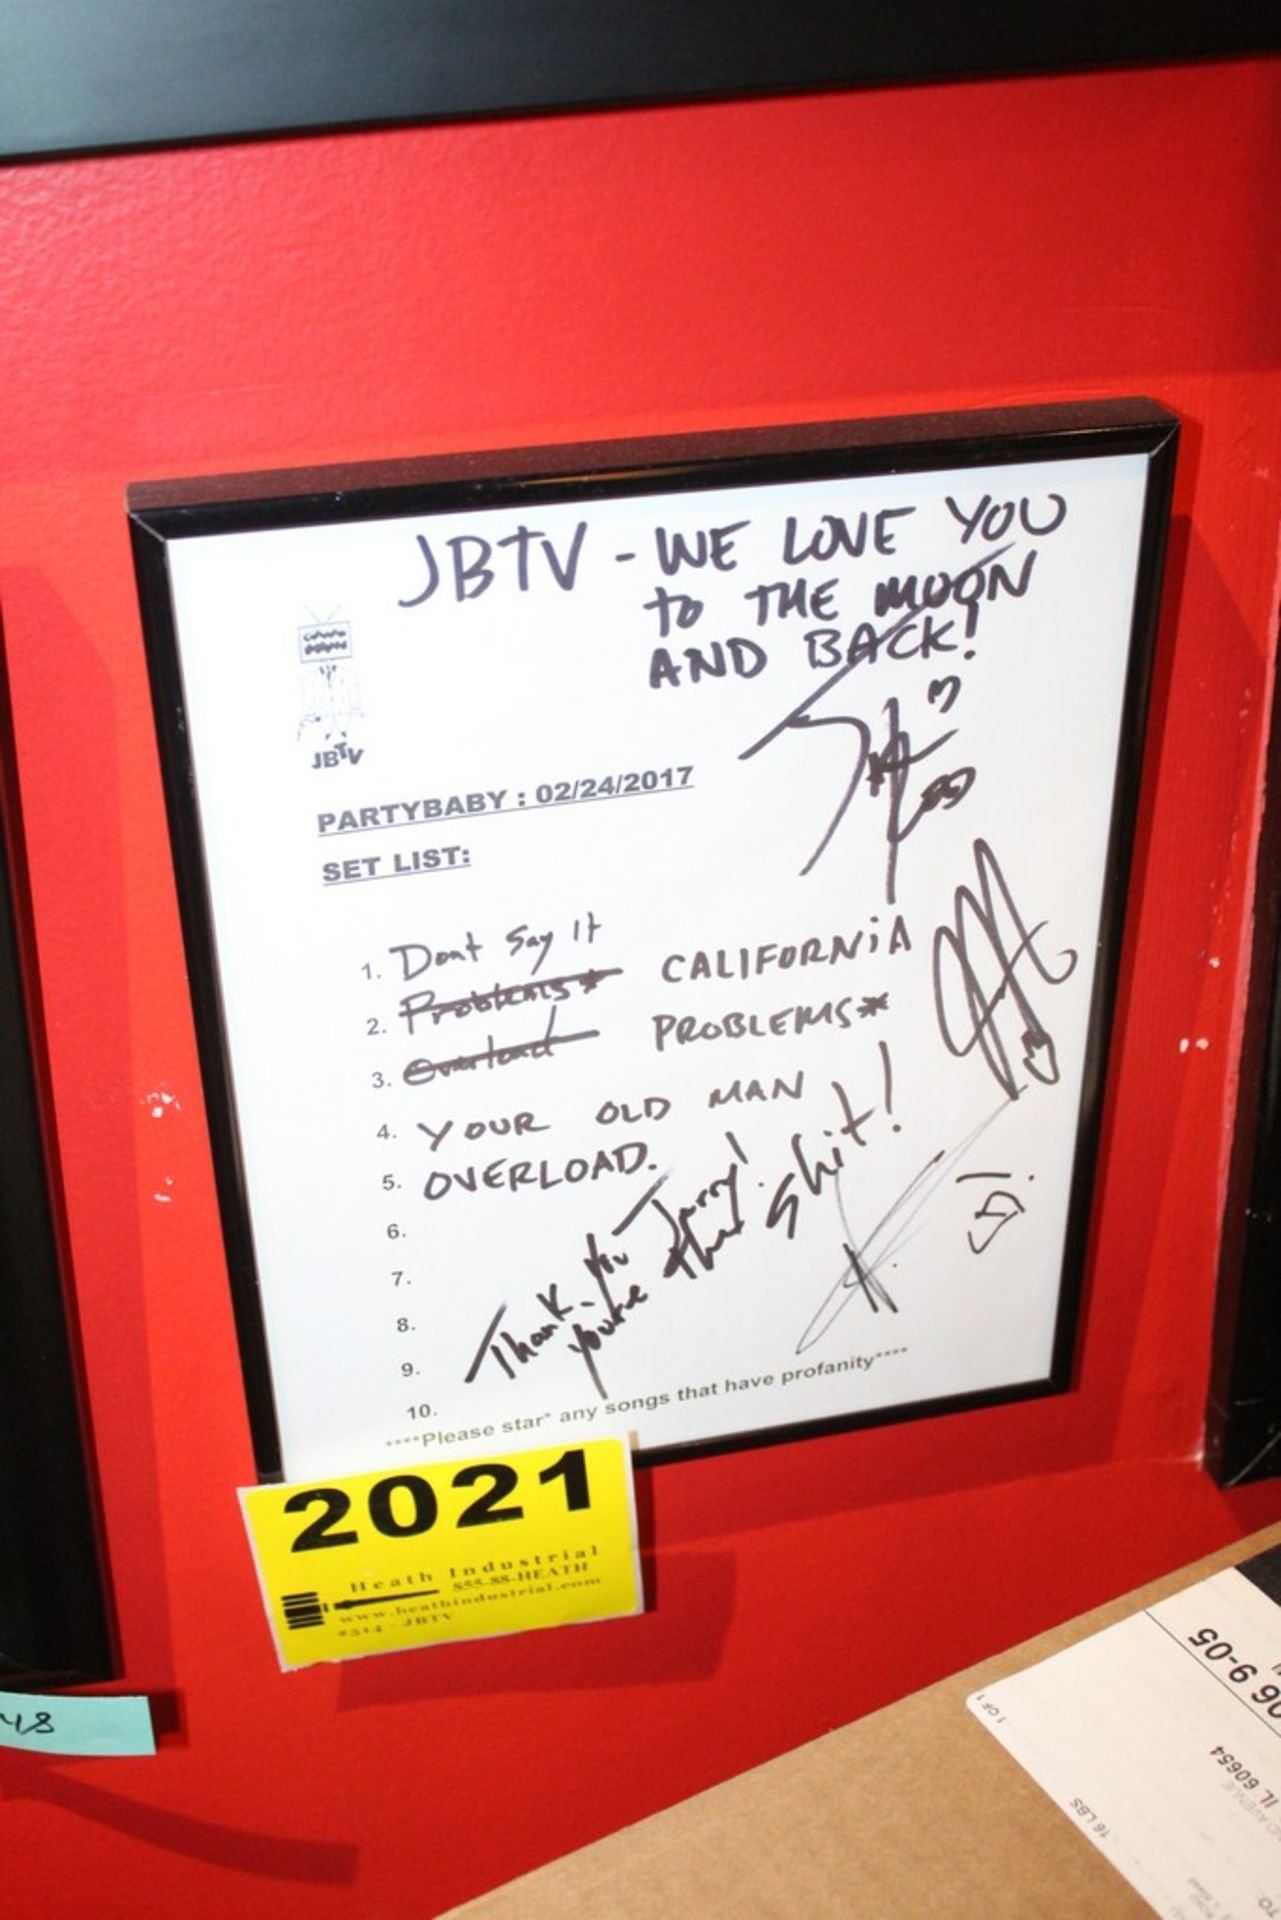 Lot 2021 - Partybaby Signed JBTV Framed Set List